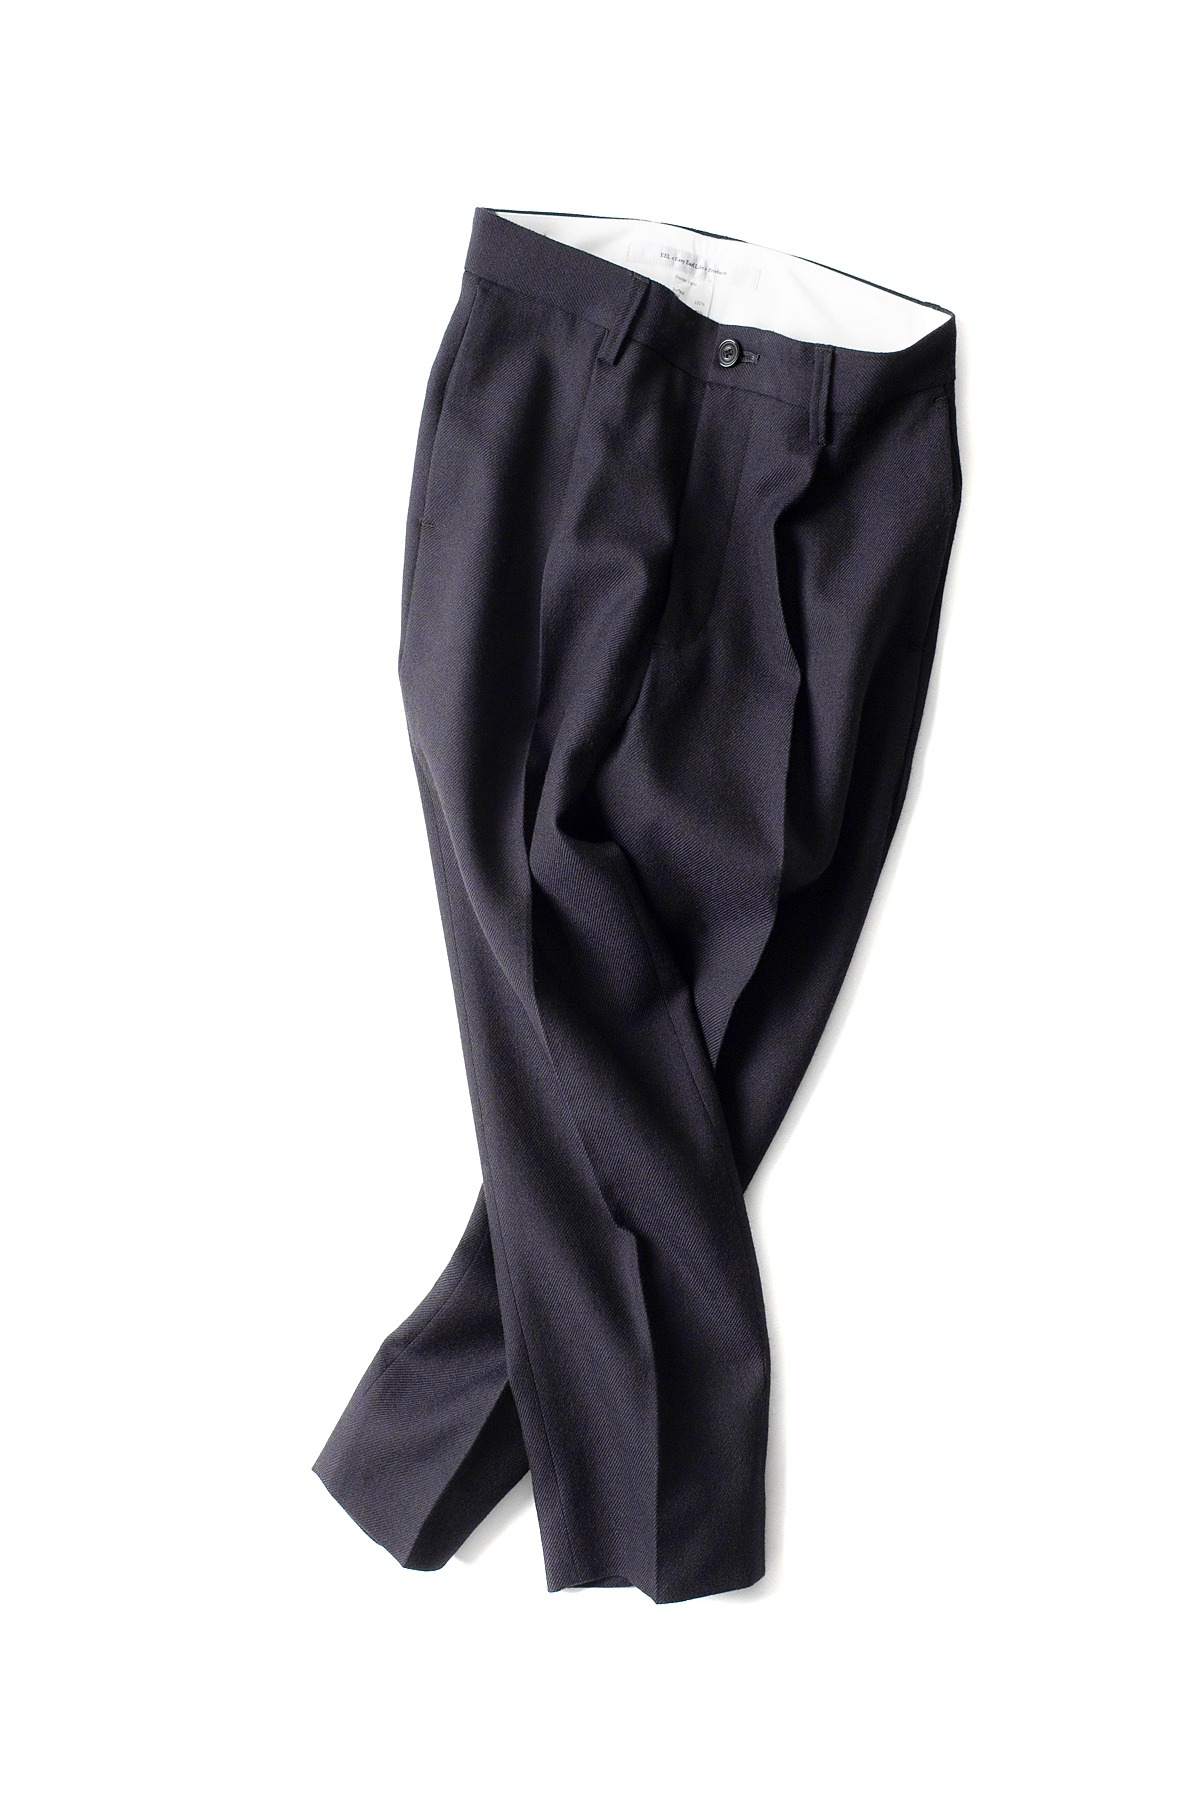 EEL : Shonen Pants (Navy)